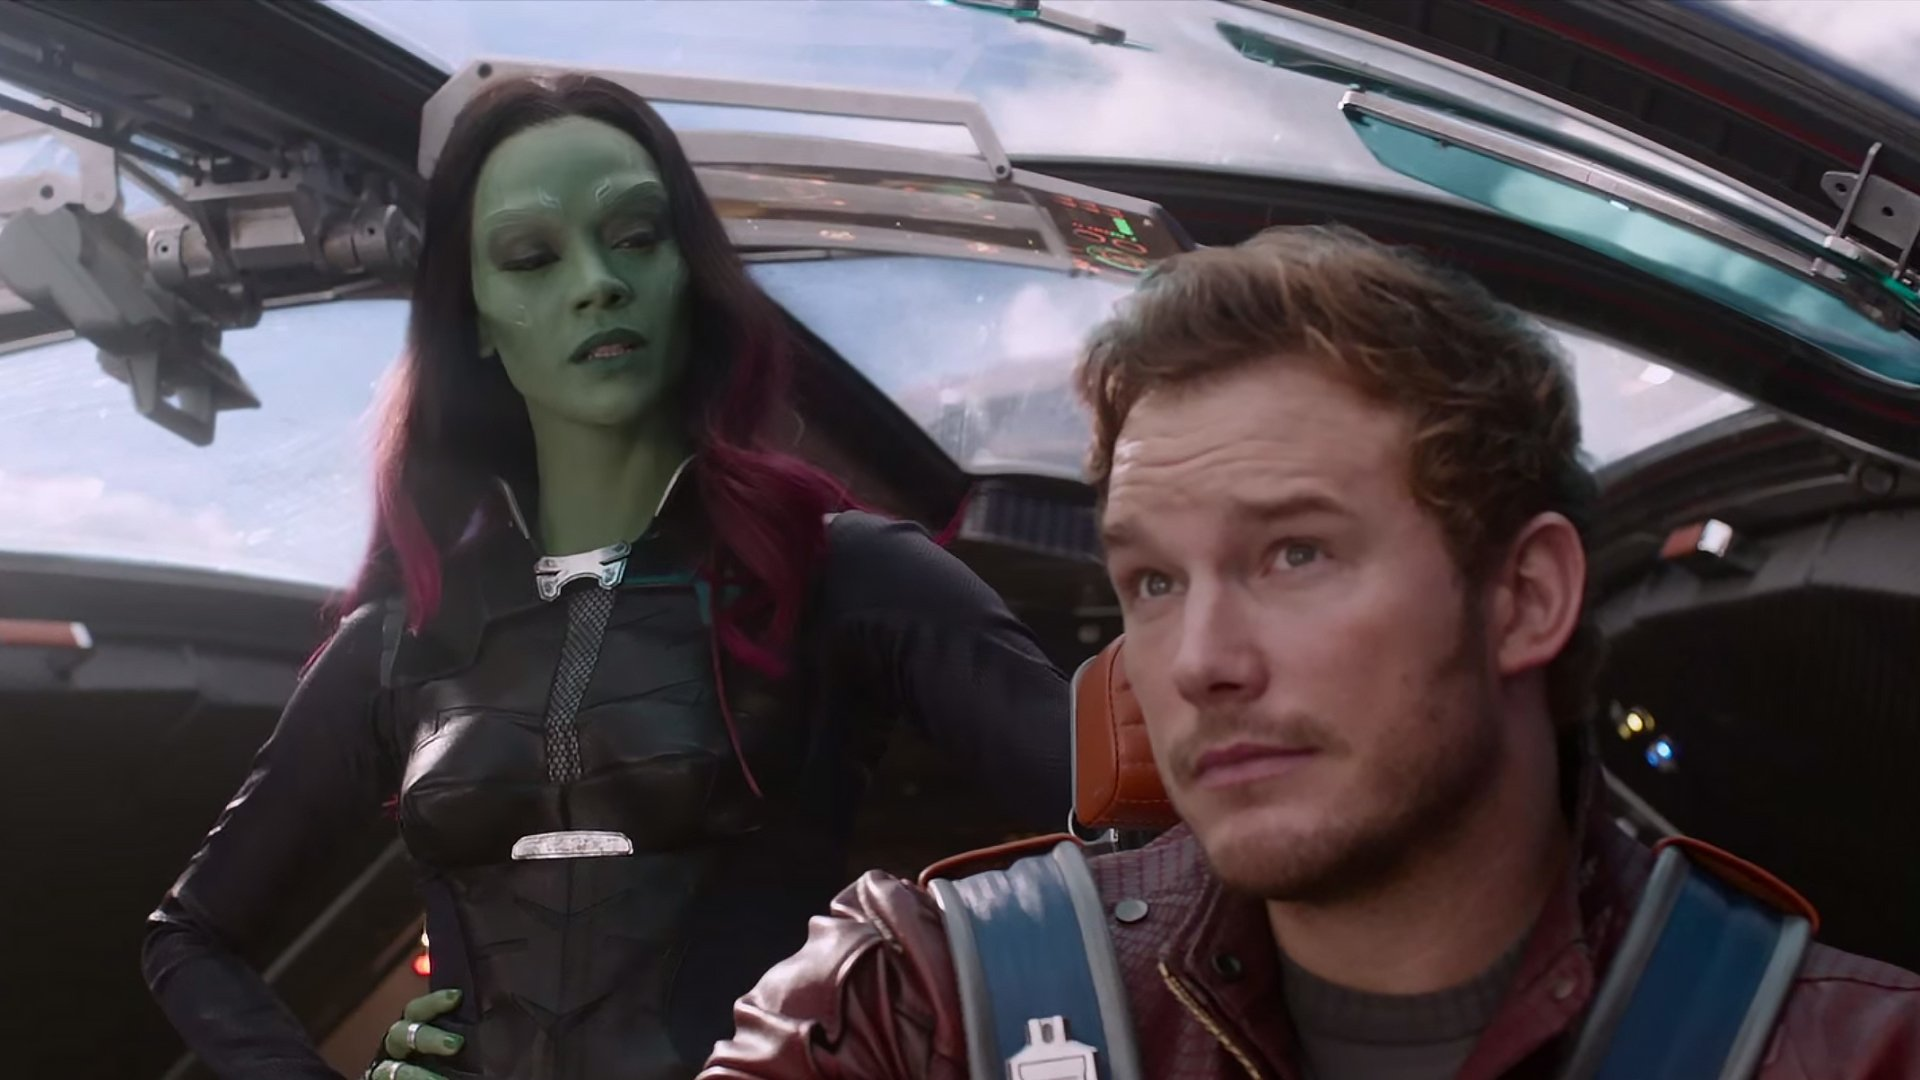 Movie - Guardians of the Galaxy  Gamora Zoe Saldana Chris Pratt Peter Quill Wallpaper